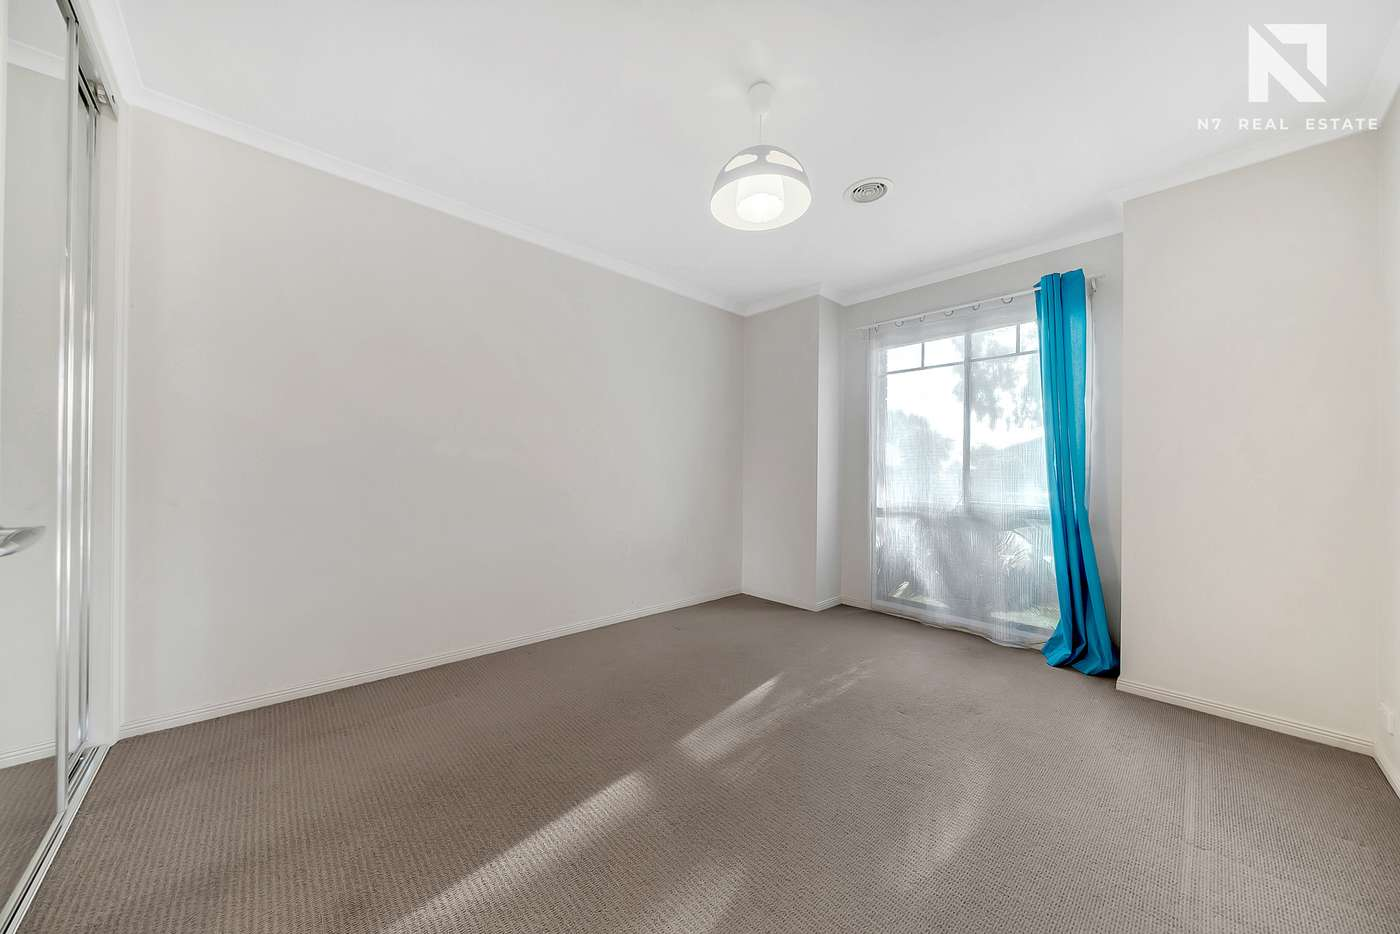 Seventh view of Homely house listing, 14 Buvelot Crescent, Caroline Springs VIC 3023